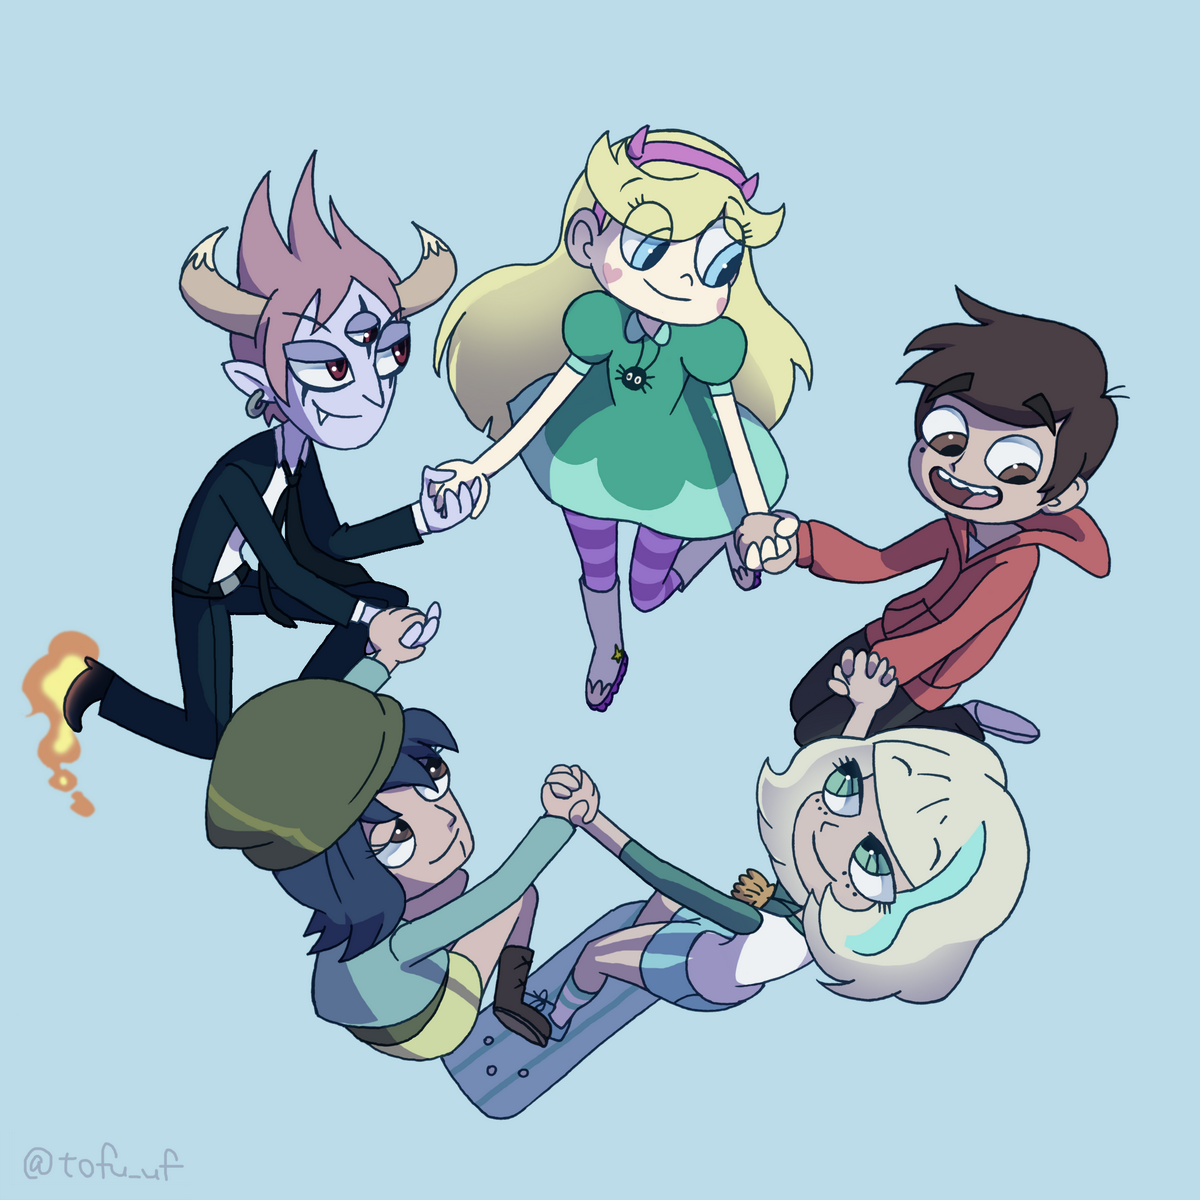 Major characters in Svfoe